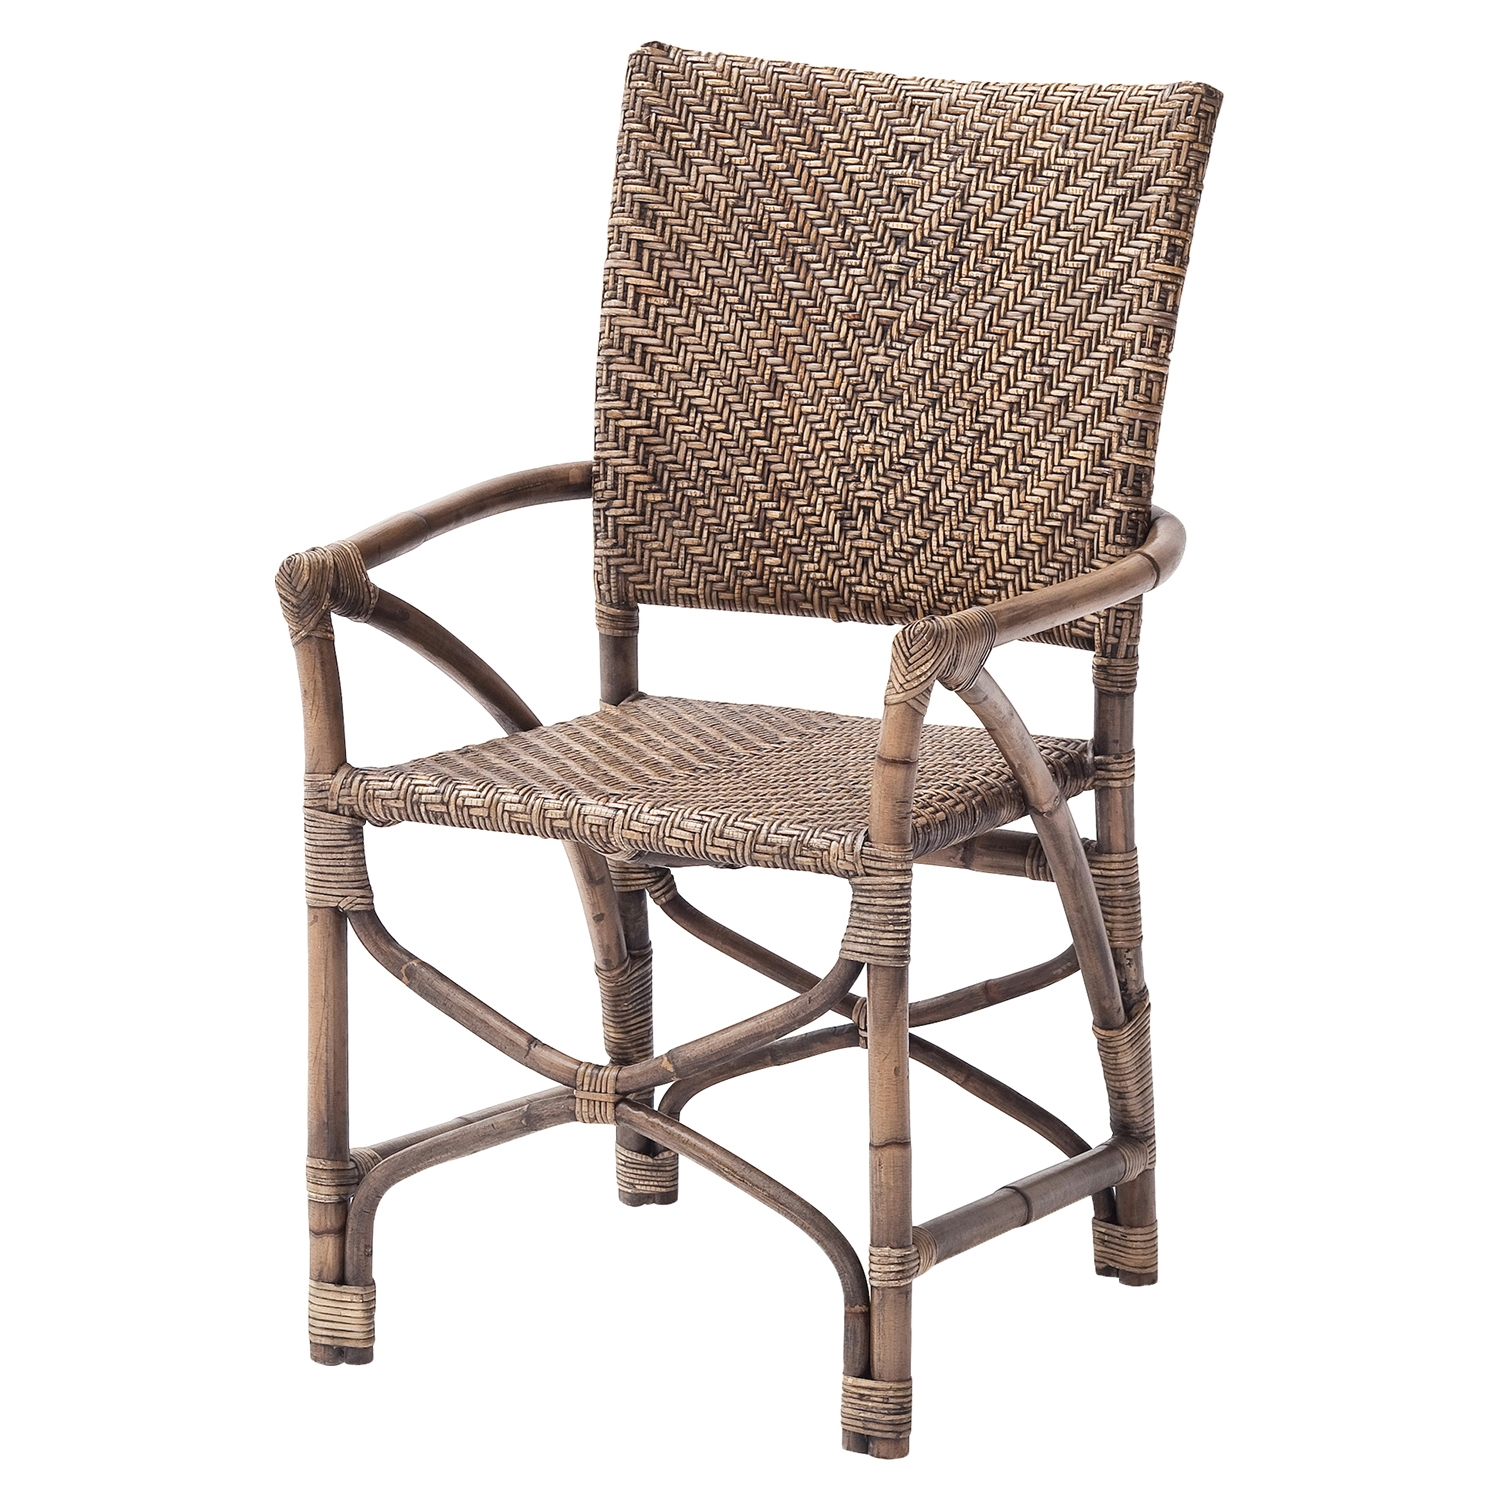 Wickerworks Countess Chair - Natural Rustic (Set of 2) - NSOLO-CR49